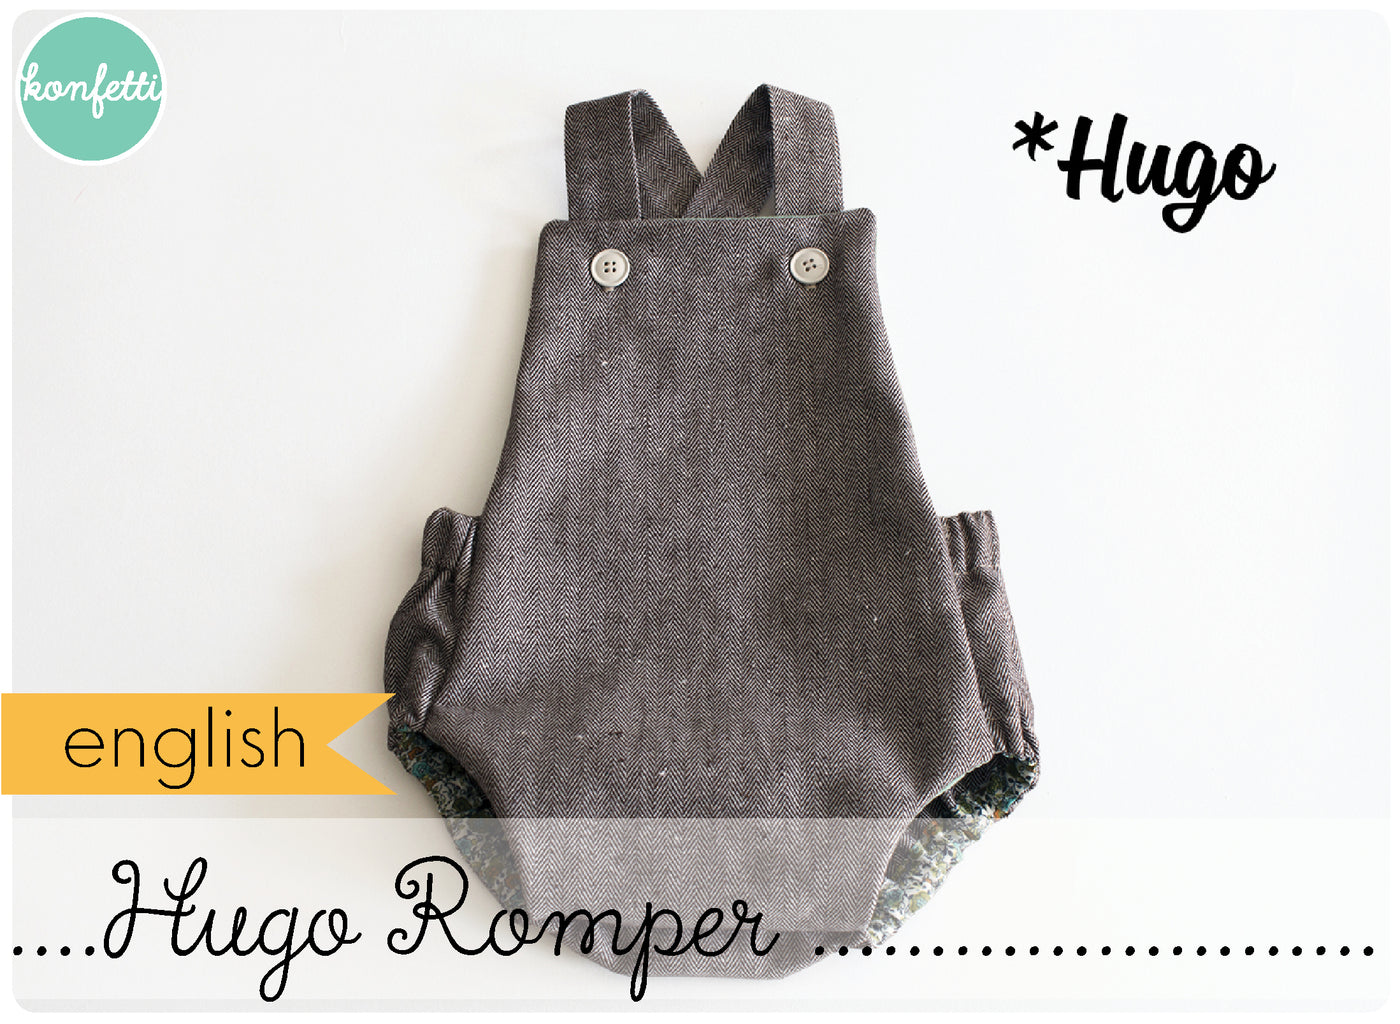 Hugo - Romper for babies (english)